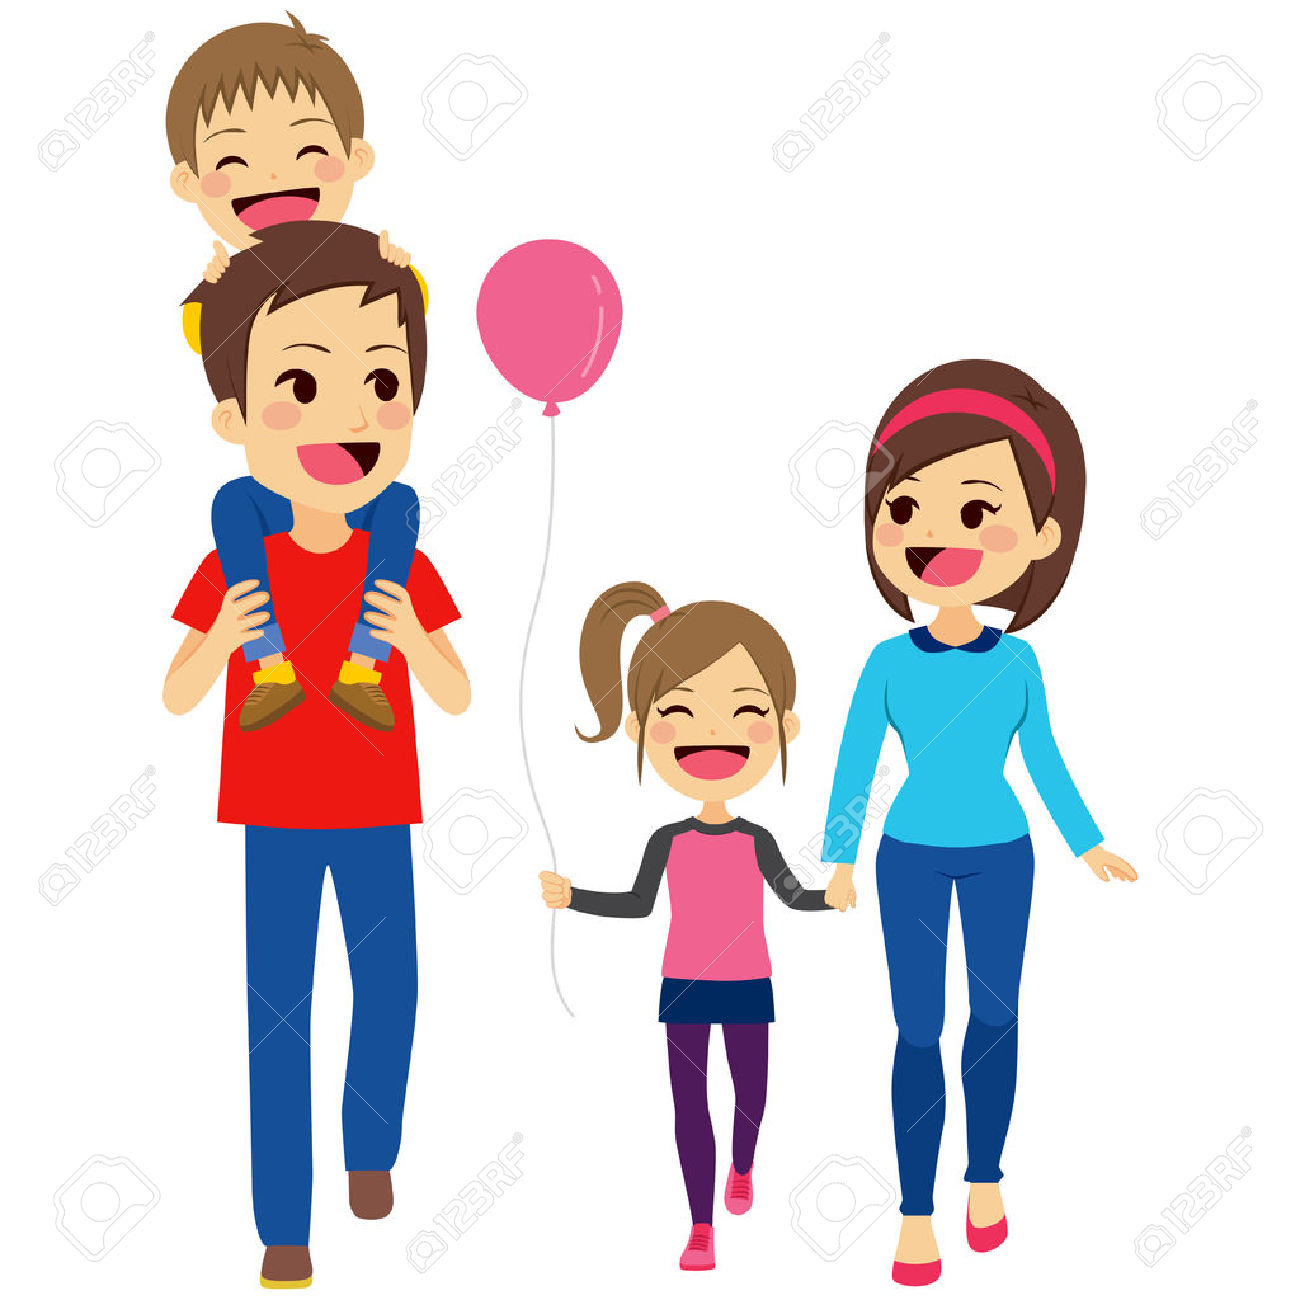 Cartoon Family Clipart At Getdrawings Com Free For Personal Use